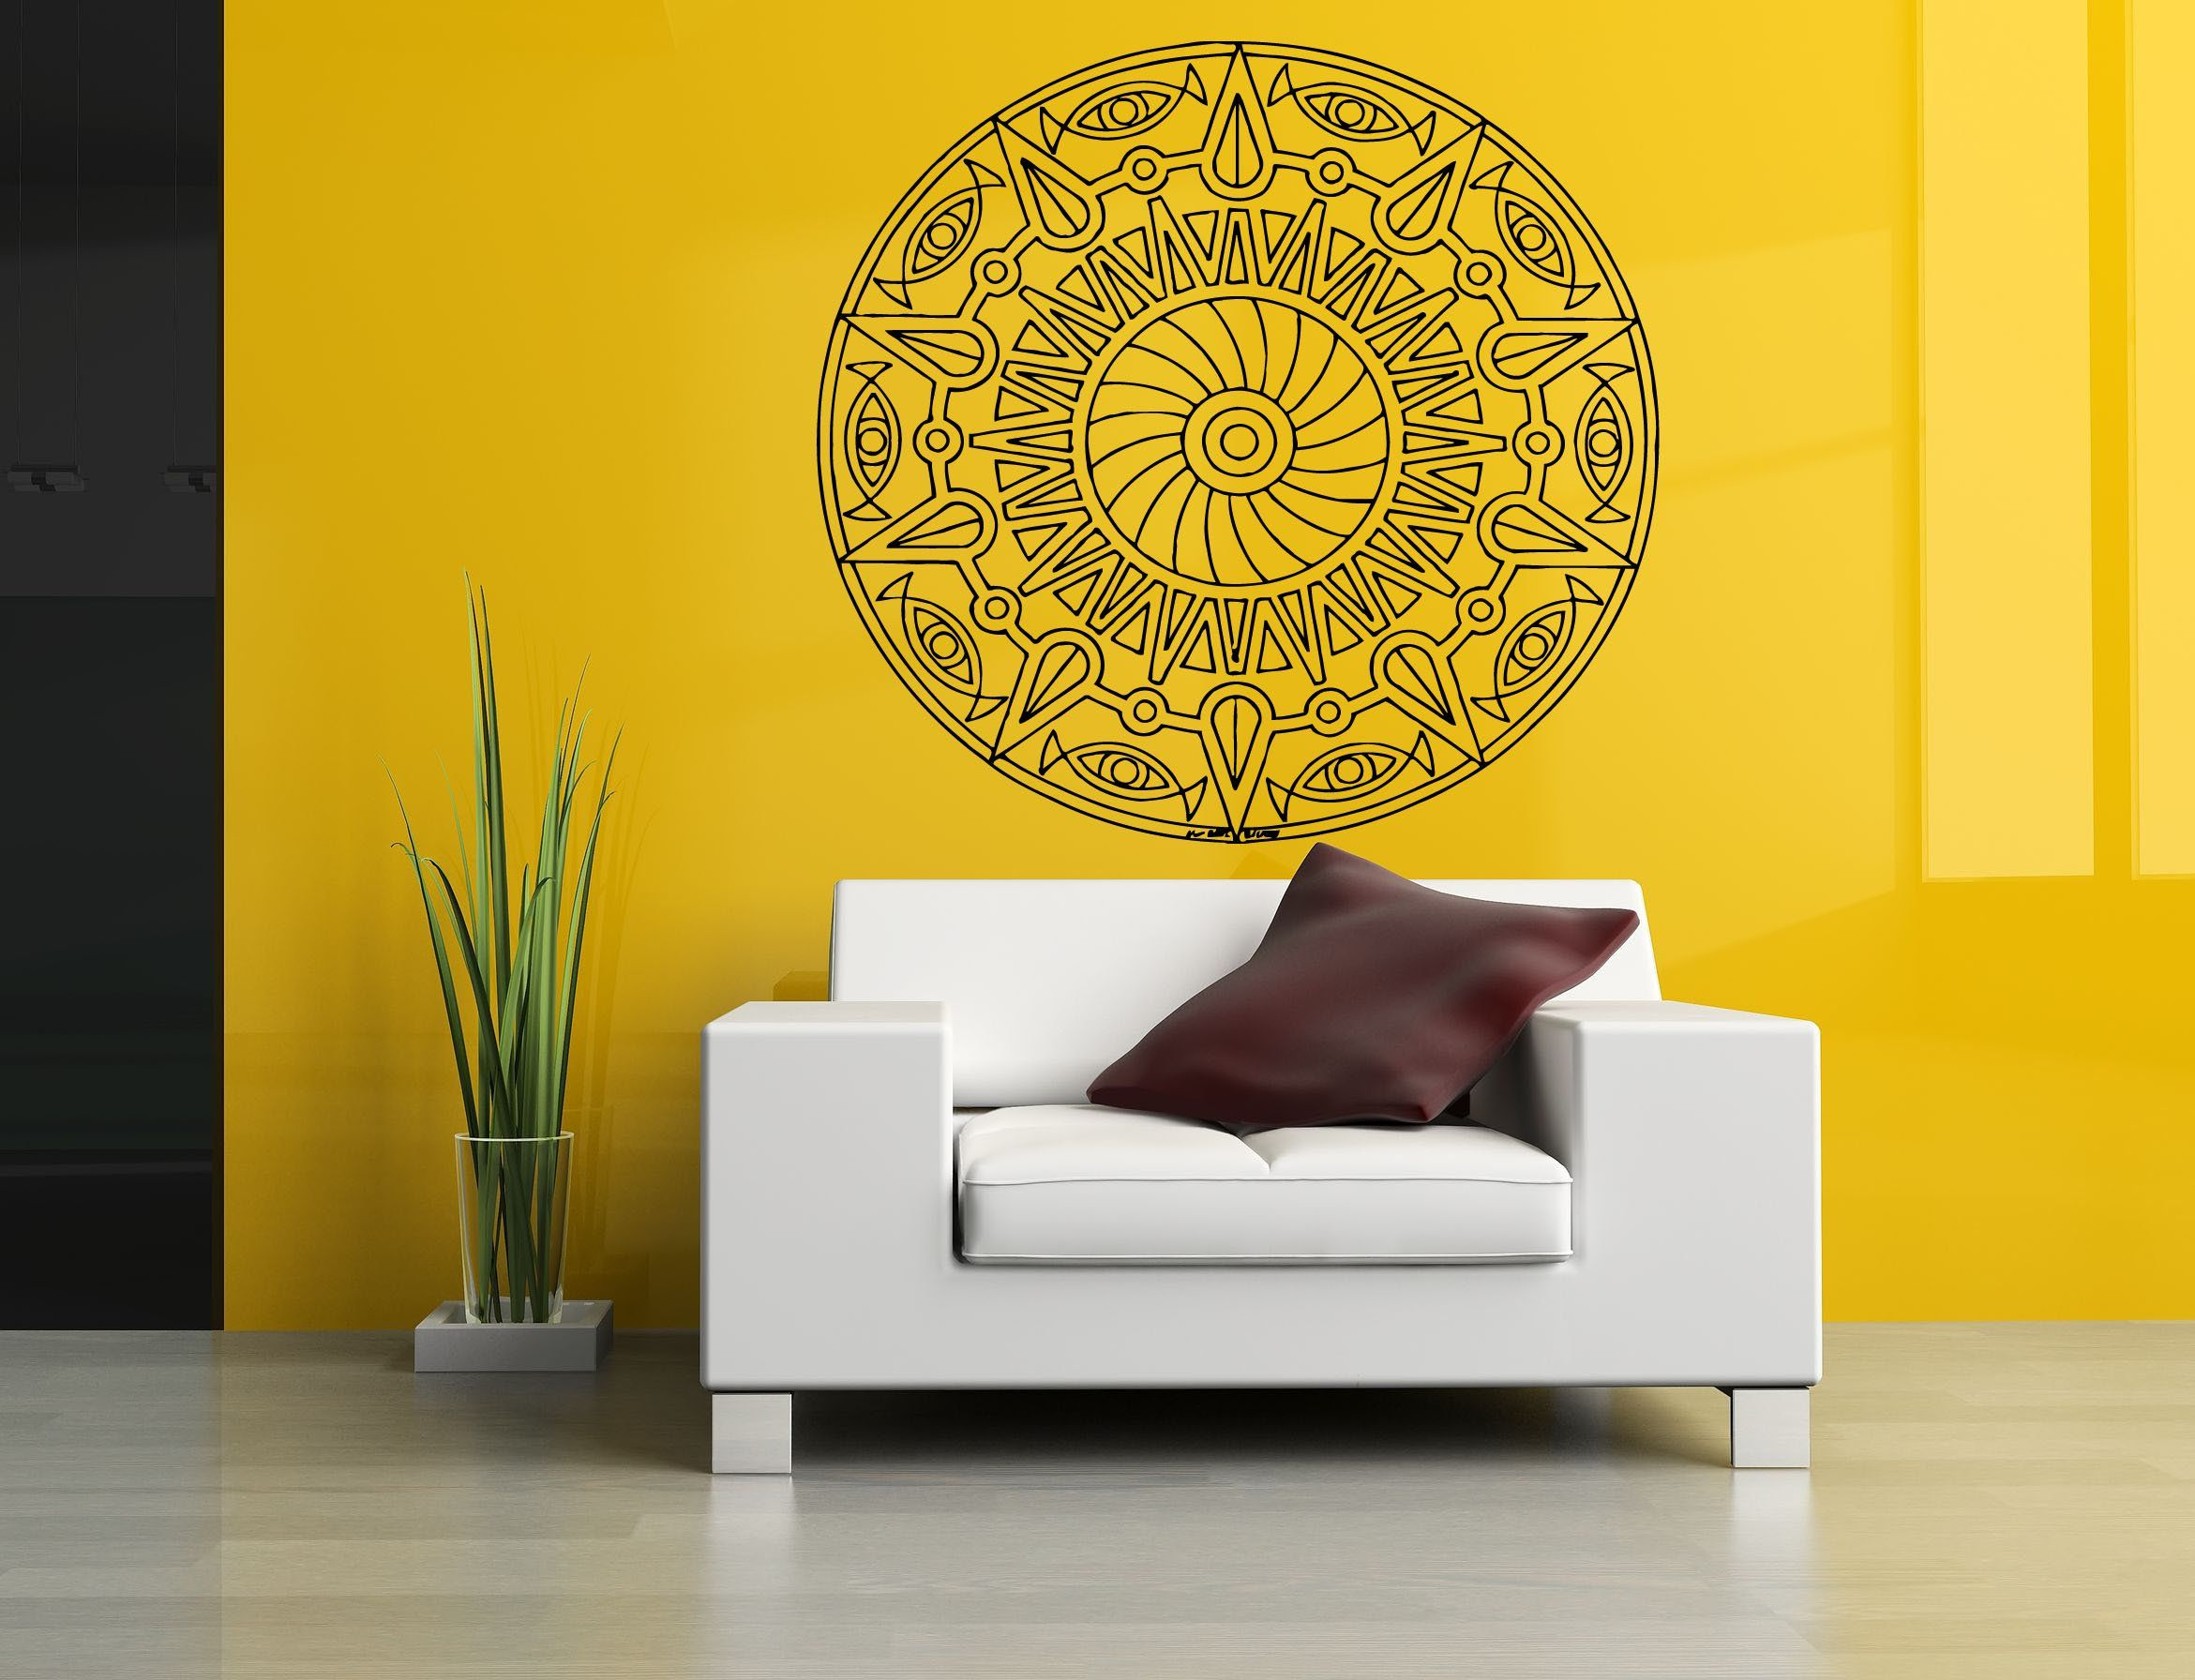 Wall Room Decor Art Vinyl Sticker Mural Decal Mandala Abstract Big ...